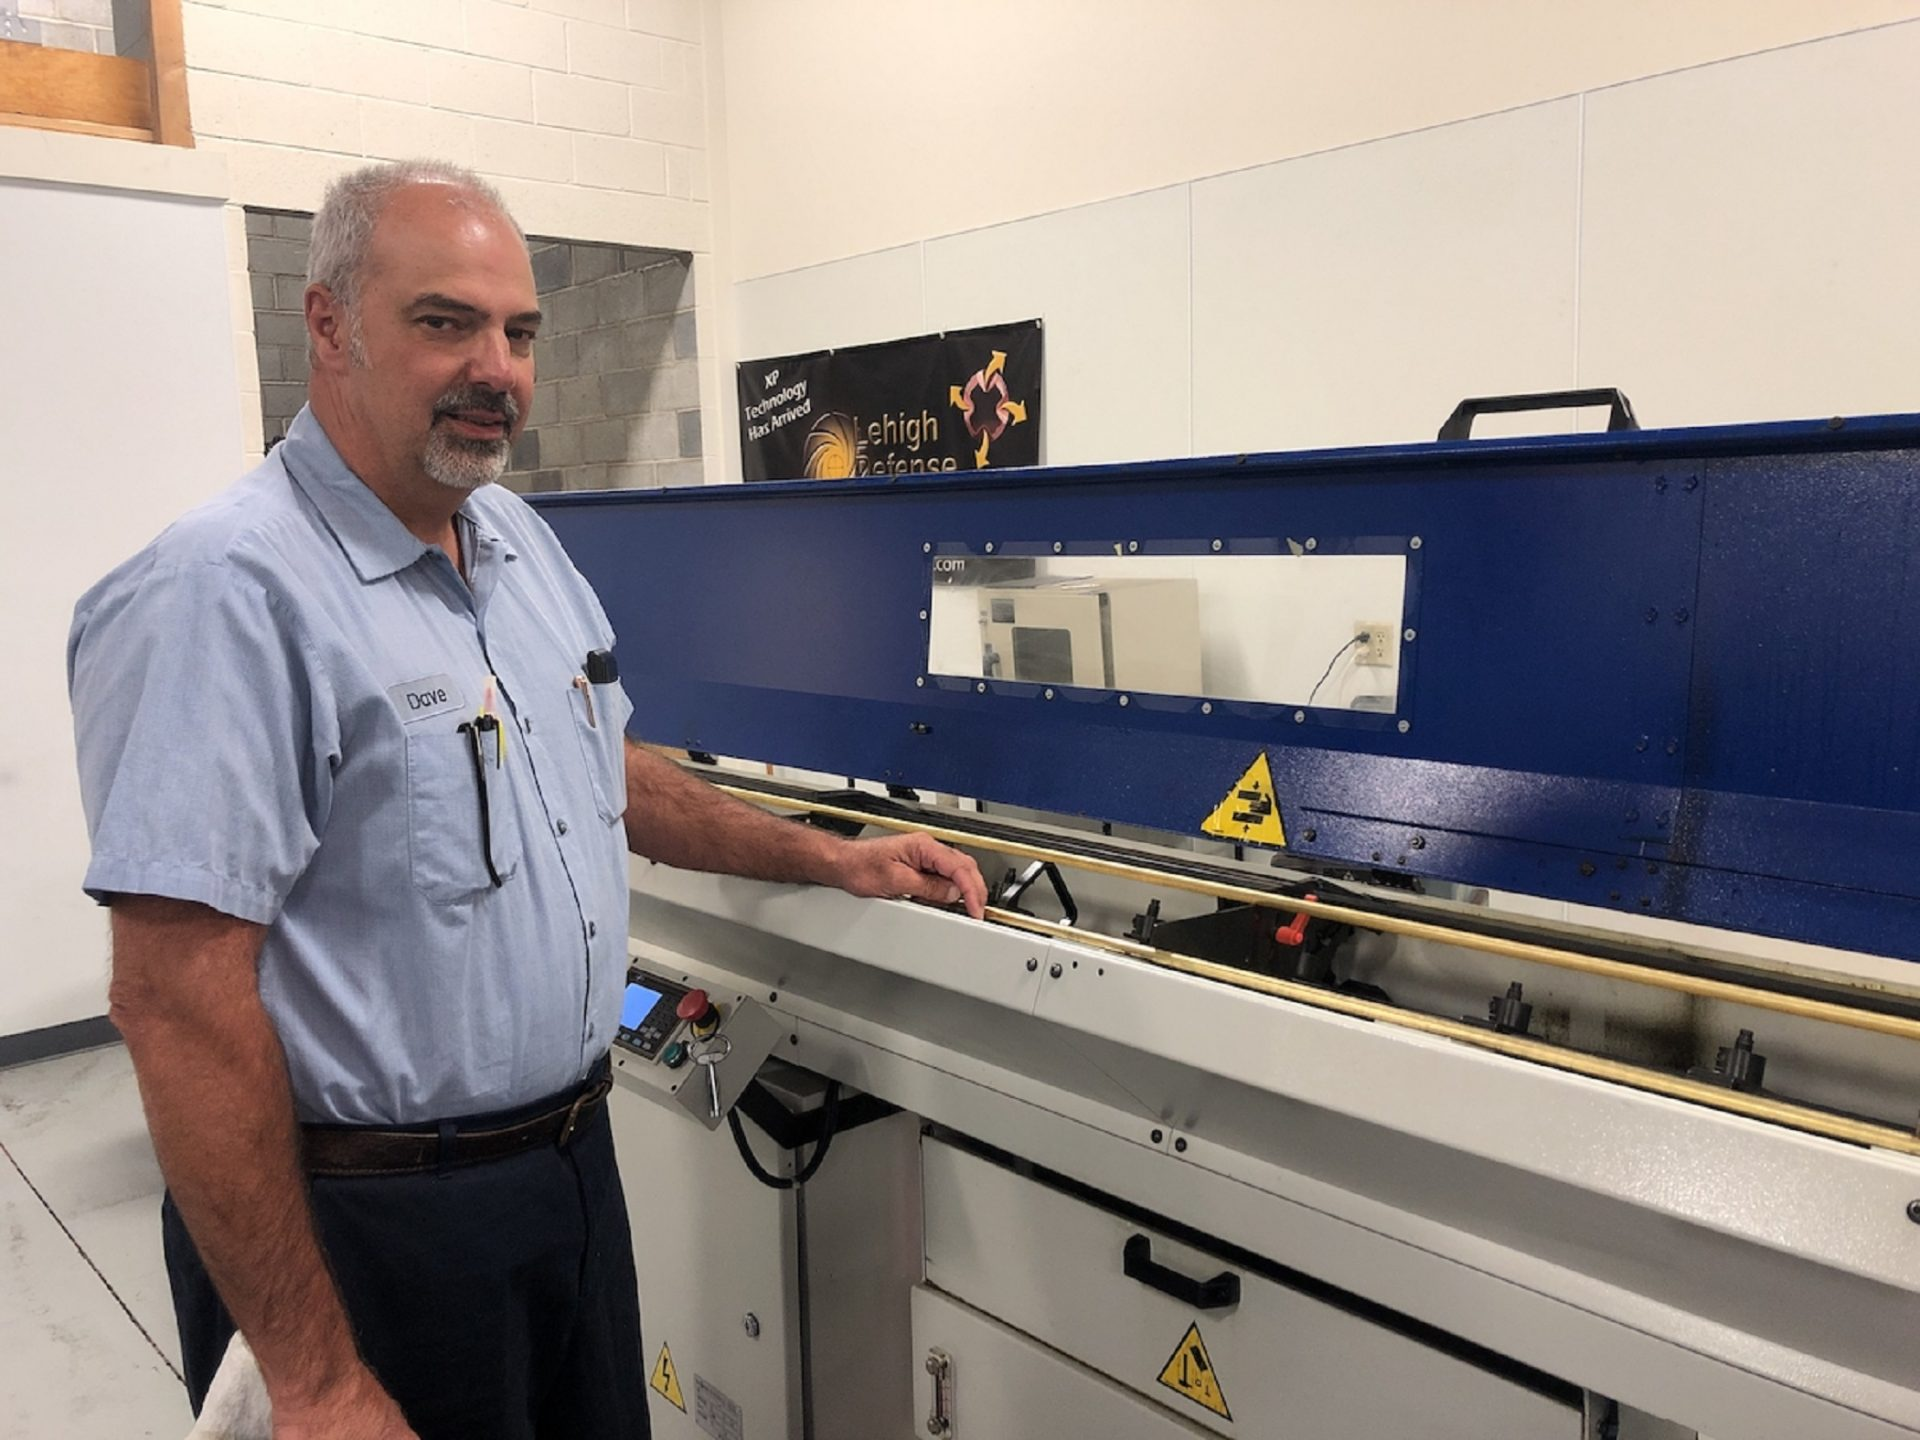 David Fricke of Quakertown, Pa.-based Millennium Manufacturing and Lehigh Defense with one of the machines used to make non-lead ammunition. Fricke says machining techniques makes it possible to avoid using lead, 'a proven hazard.'